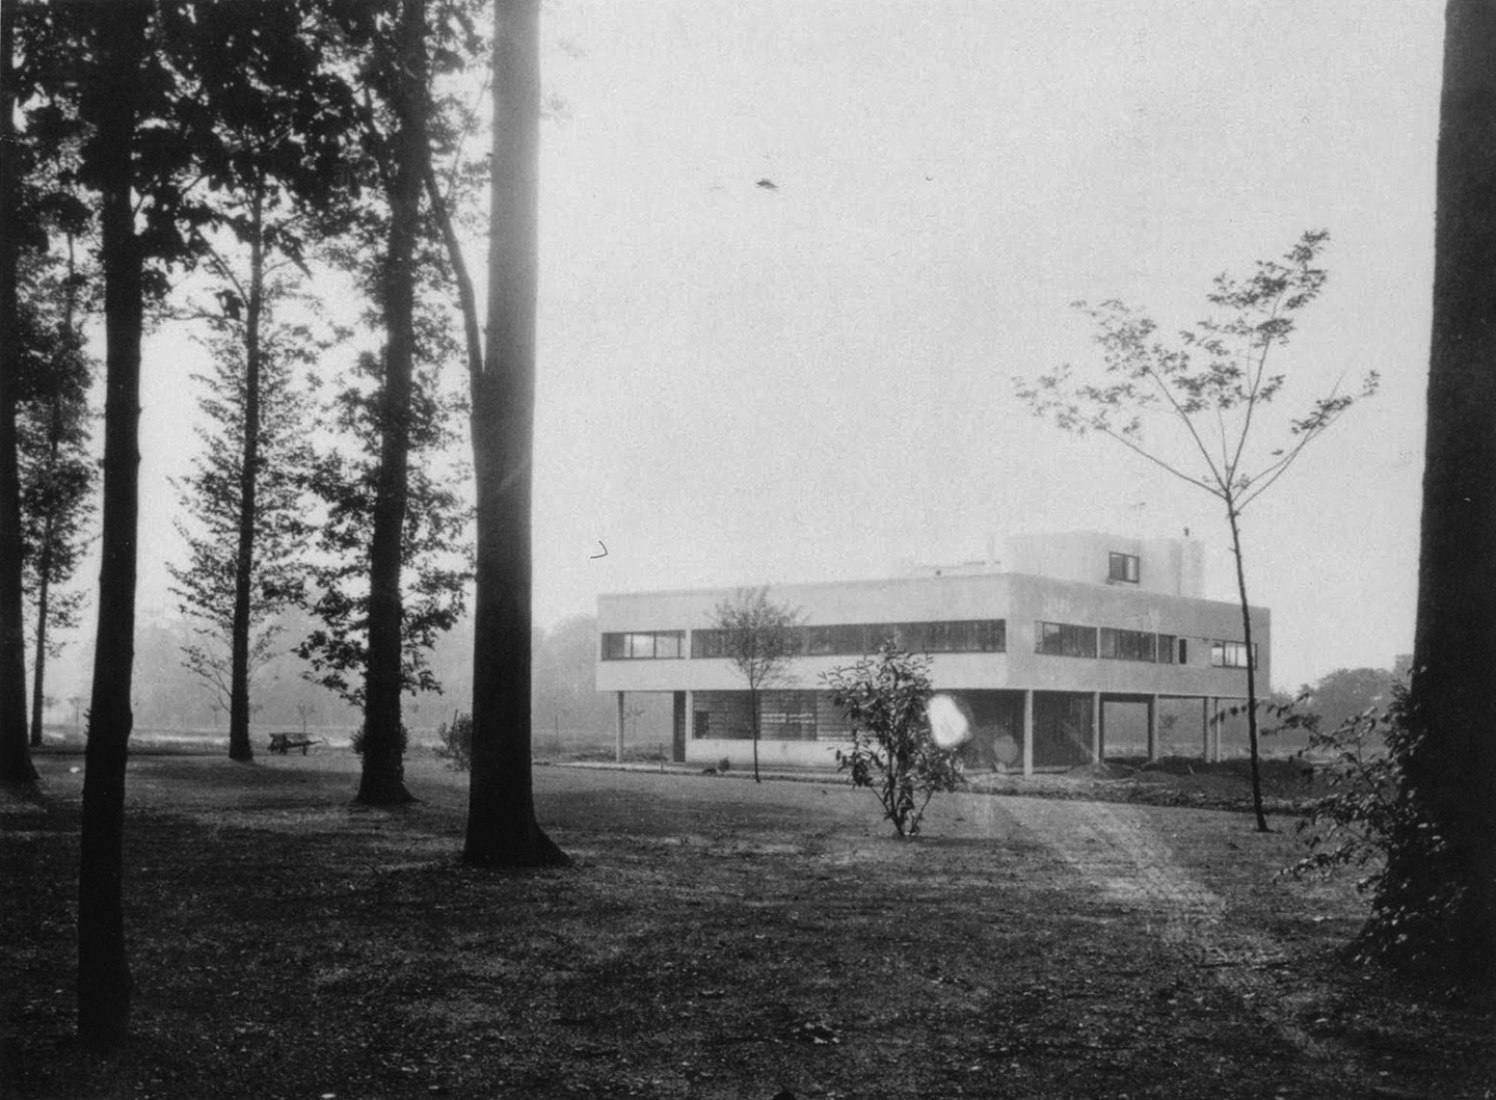 Ville Savoye (1928). Poissy, Le Corbusier. Architect, Le Corbusier.